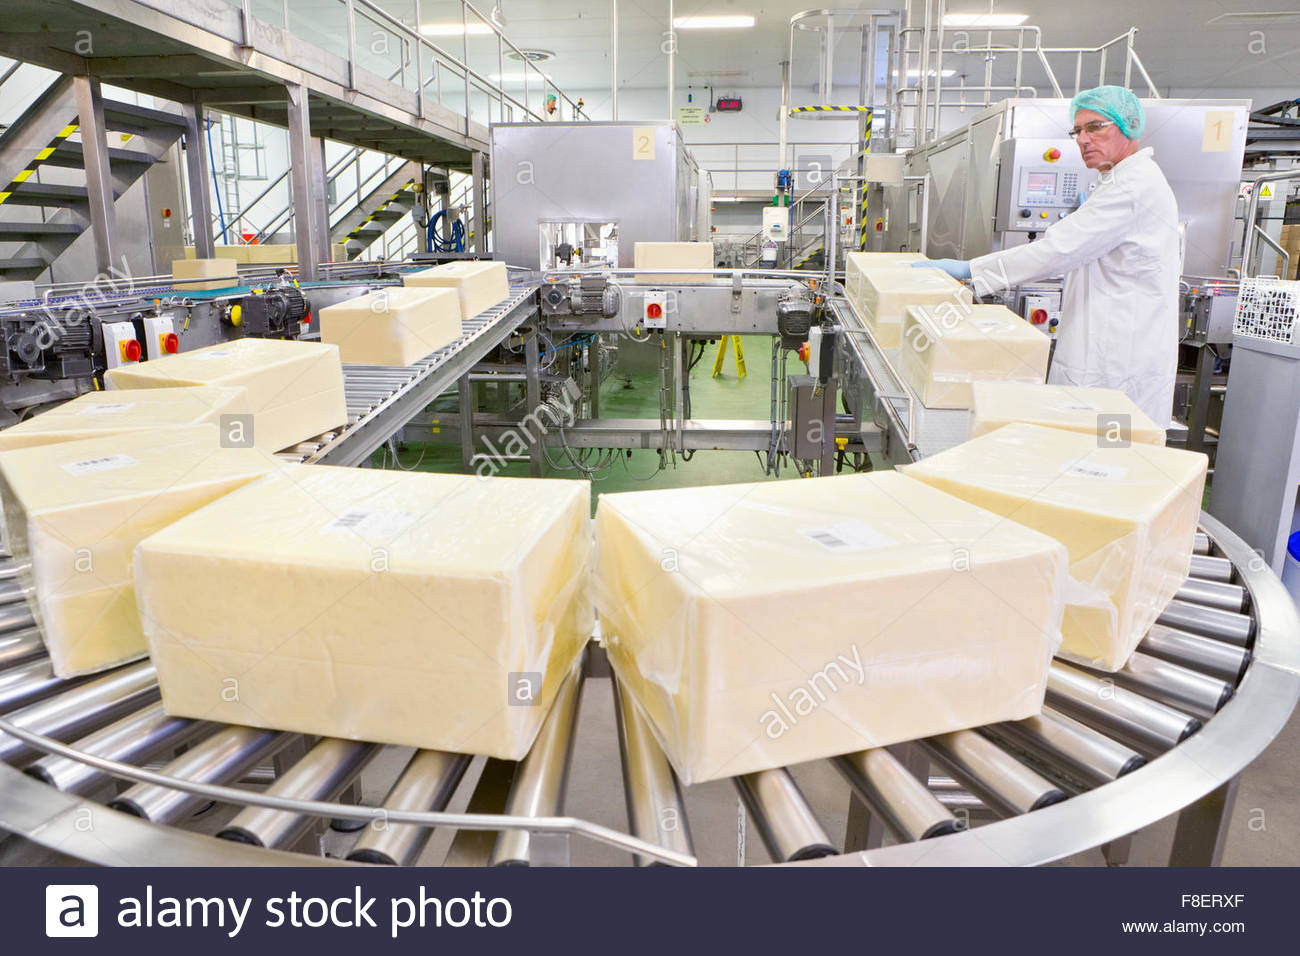 Worker handling large blocks of cheese at production line in processing plant - Stock Image